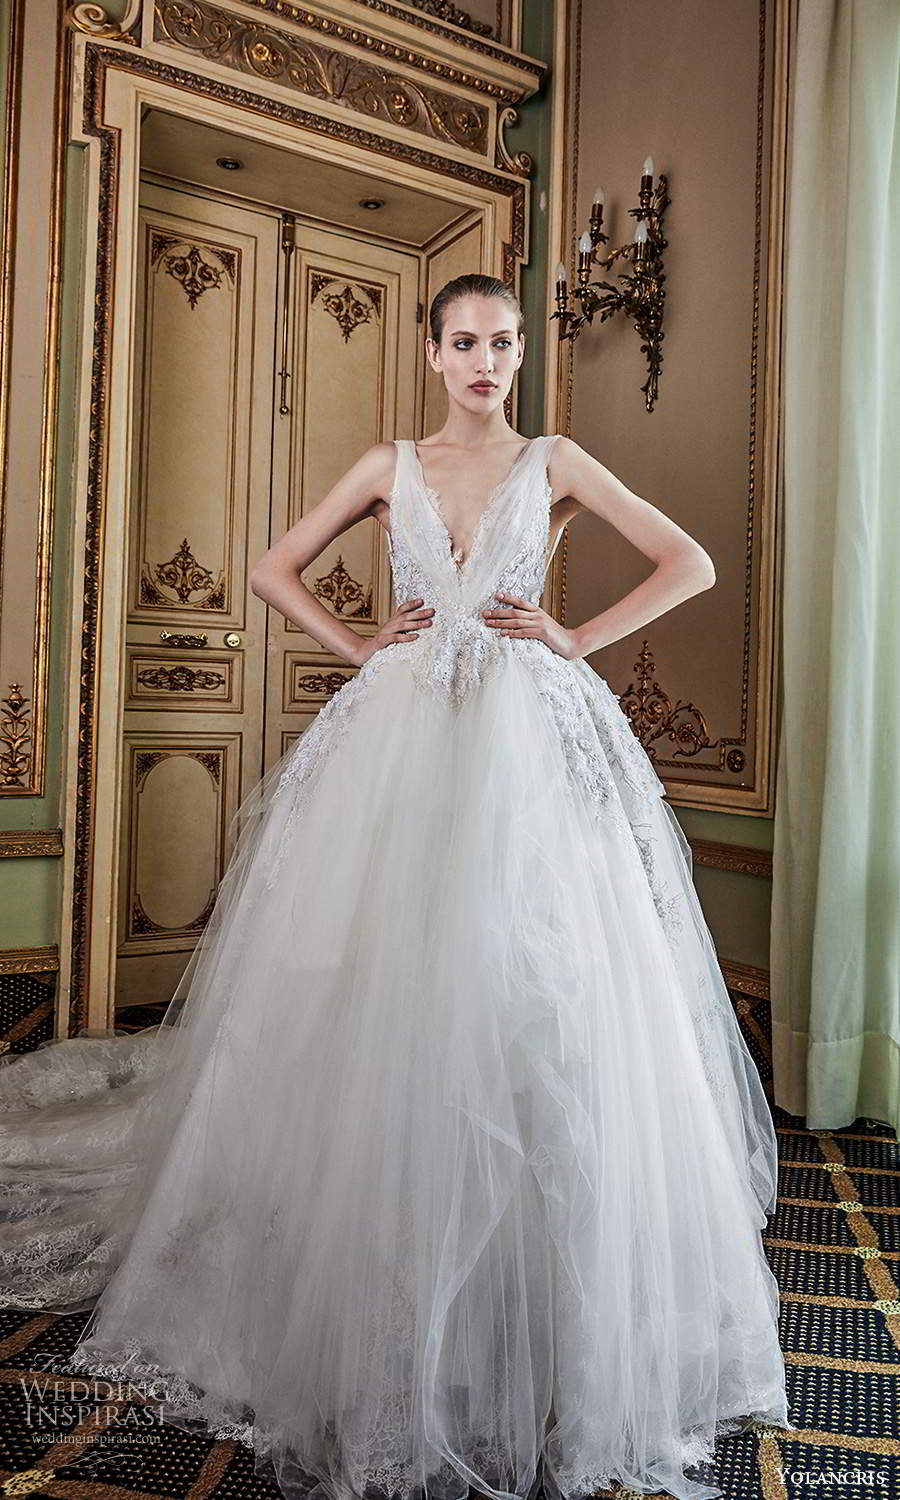 yolancris 2020 bridal couture sleeveless straps v neckline fully embellished a line ball gown wedding dress cathedral train (13) mv